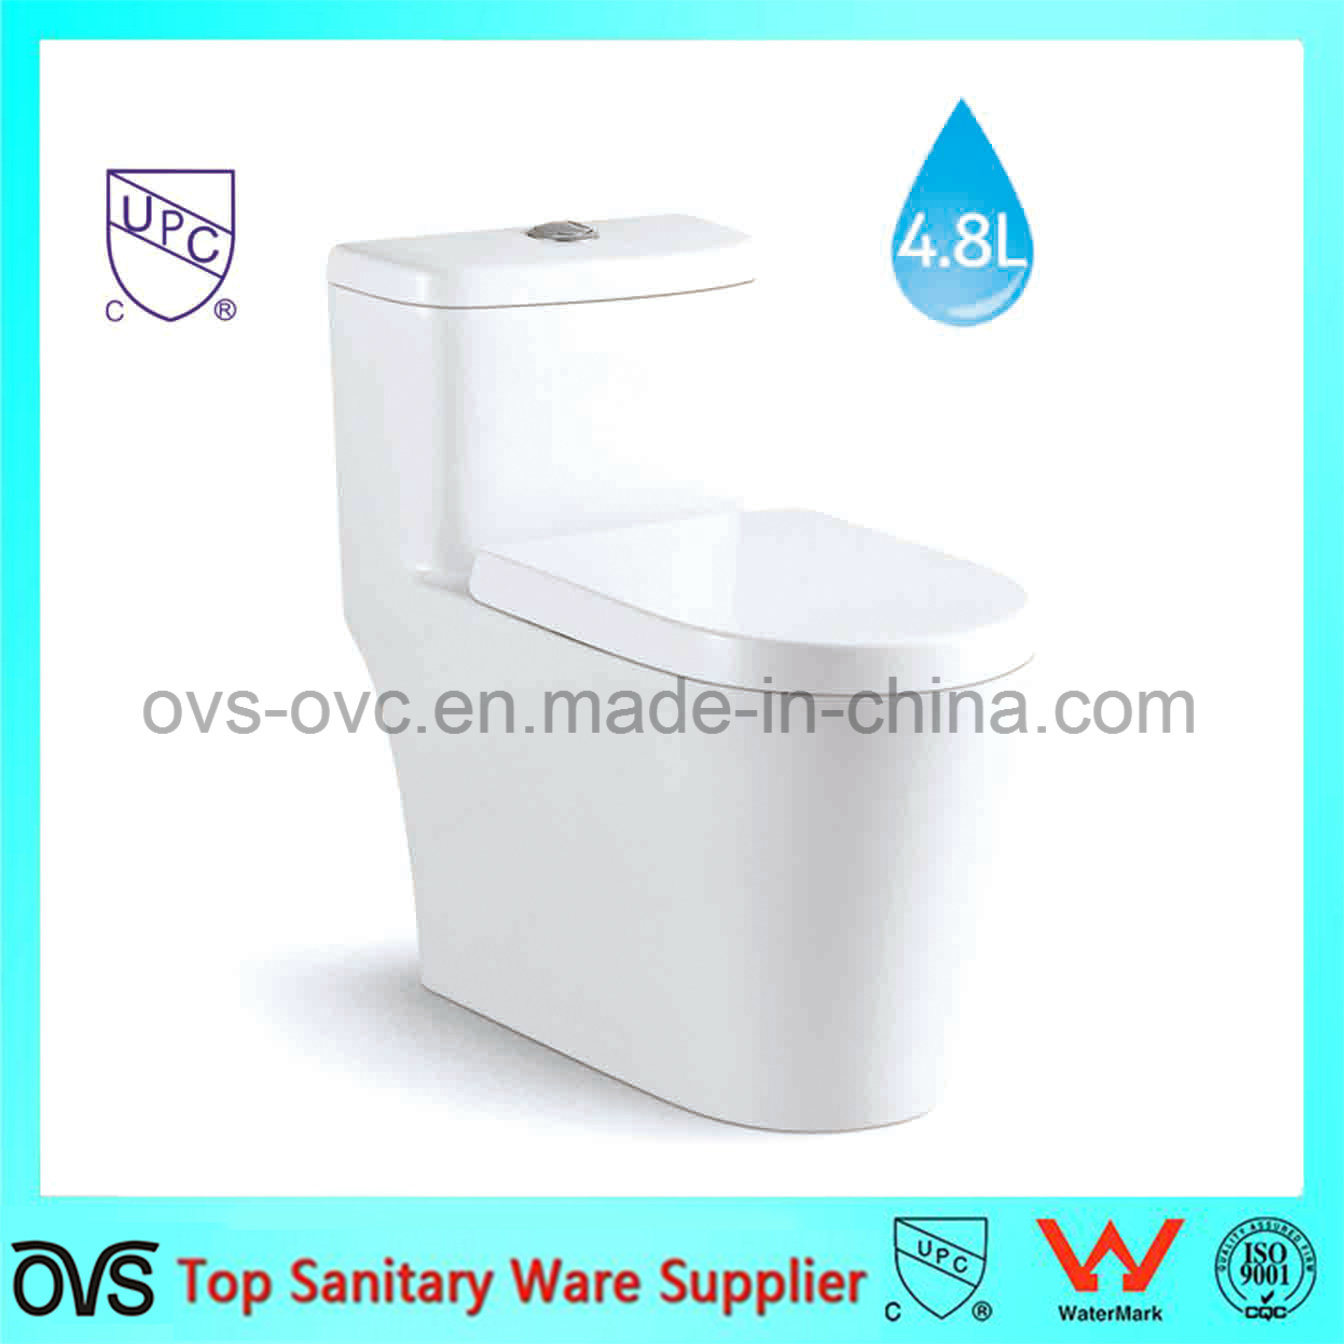 Wholesale Ceramic Toilet - Buy Reliable Ceramic Toilet from Ceramic ...